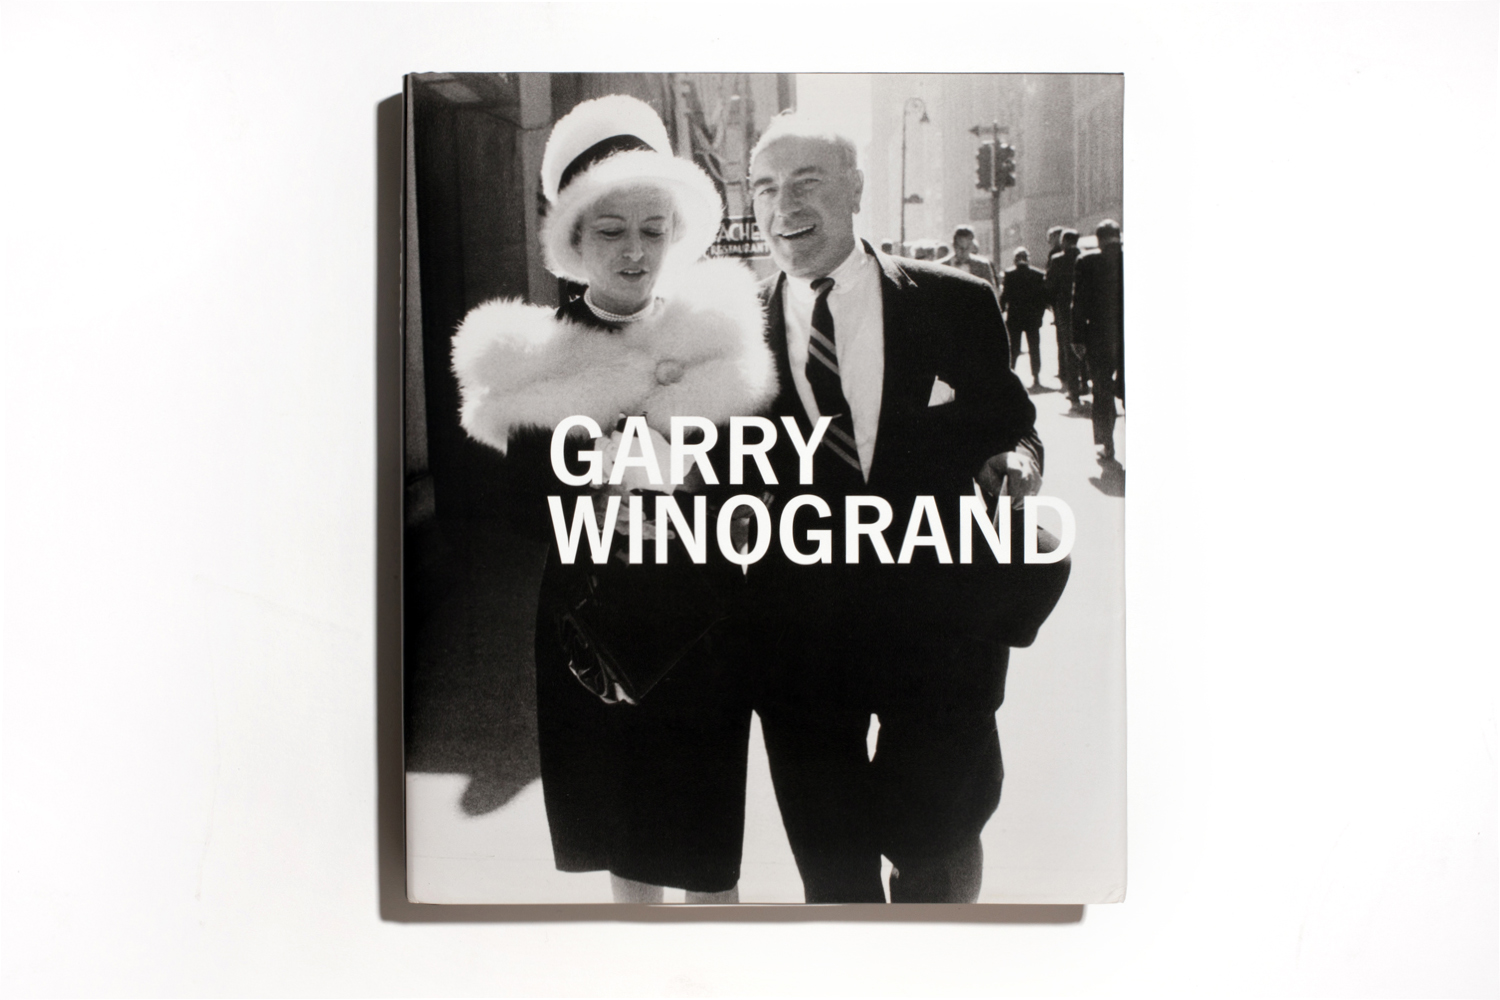 Garry  Winogrand edited by Leo Rubinfien, published by Yale University Press, selected by Paul Moakley, deputy photo editor, TIME.